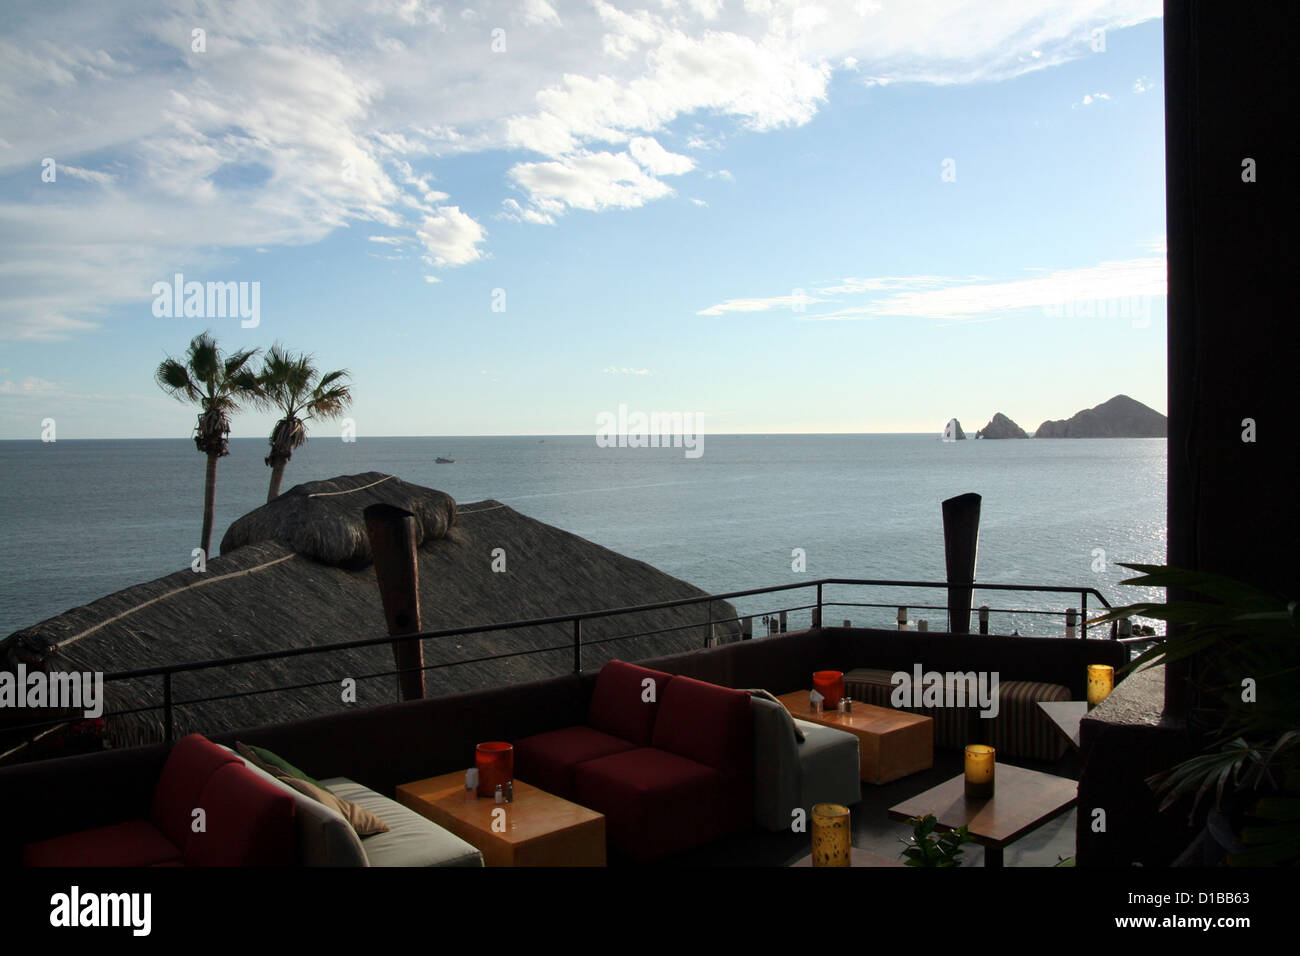 Sunset Point Wine and Pizza Lounge, Mona Lisa hotel resort, across the bay from Land's End, Cabo San Lucas, Mexico Stock Photo